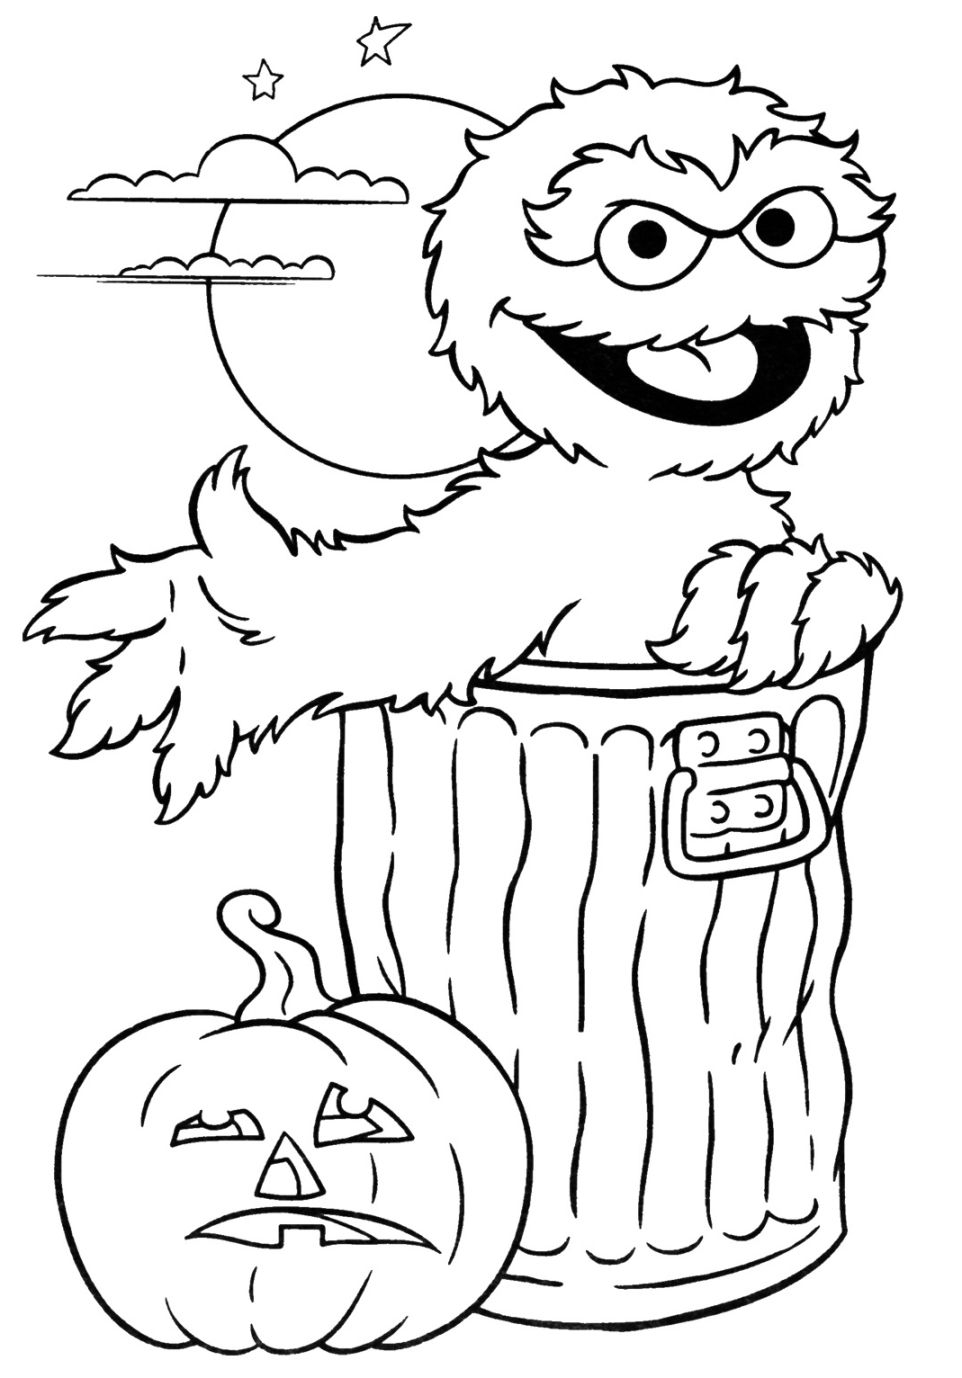 Cute Halloween Coloring Pages Printable Coloring Book World Free Printable Halloween Coloring Sheets Book